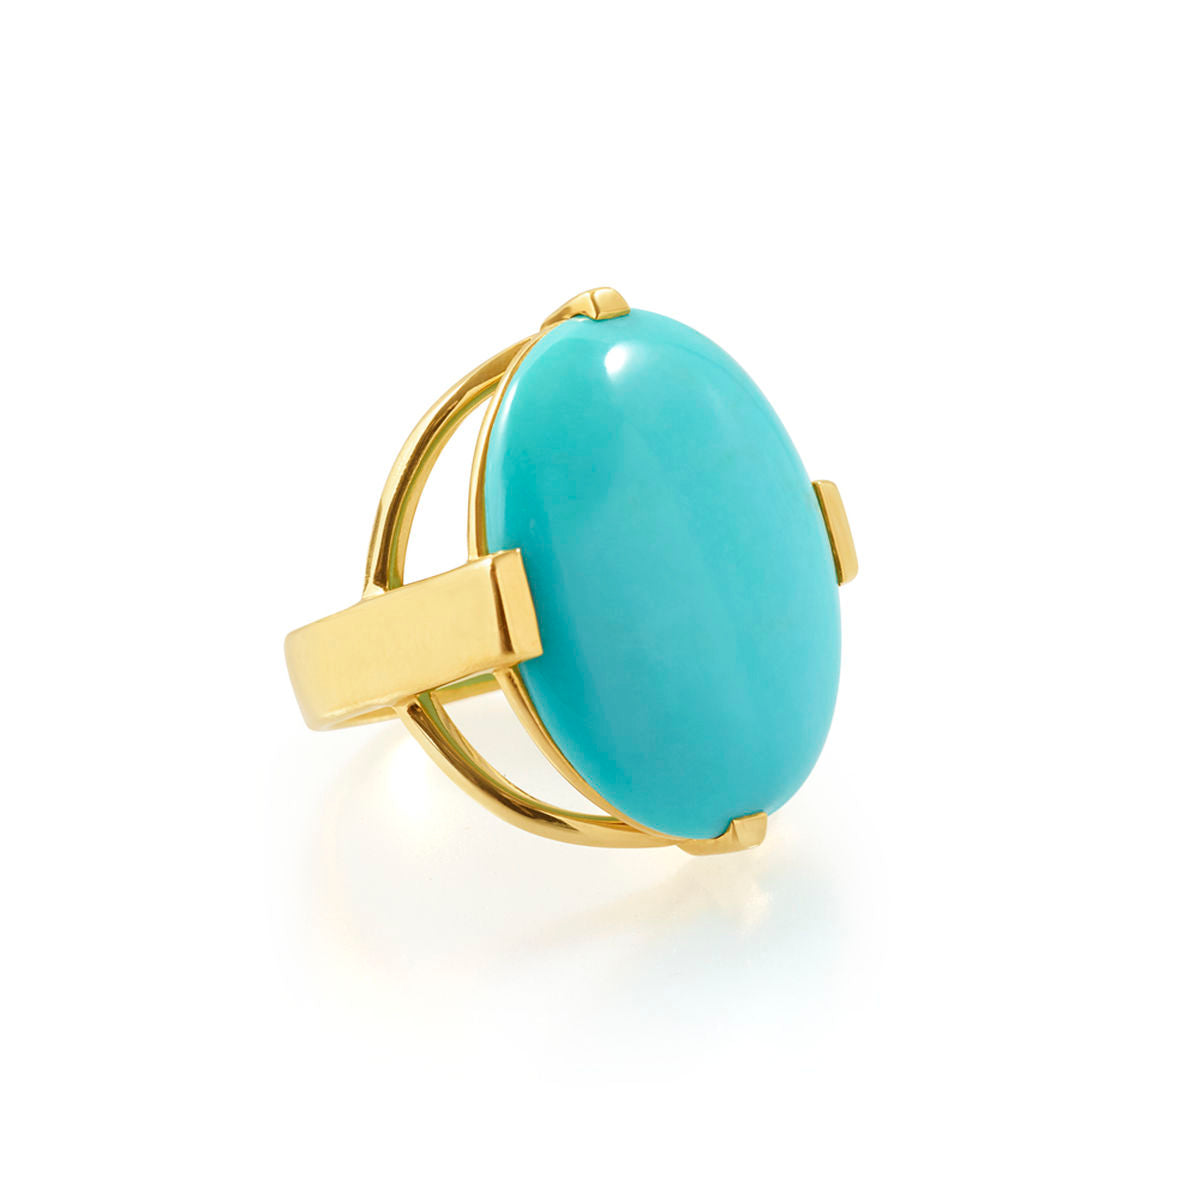 IPPOLITA Rock Candy® 18K Yellow Gold Polished Large Oval Ring in Turquoise